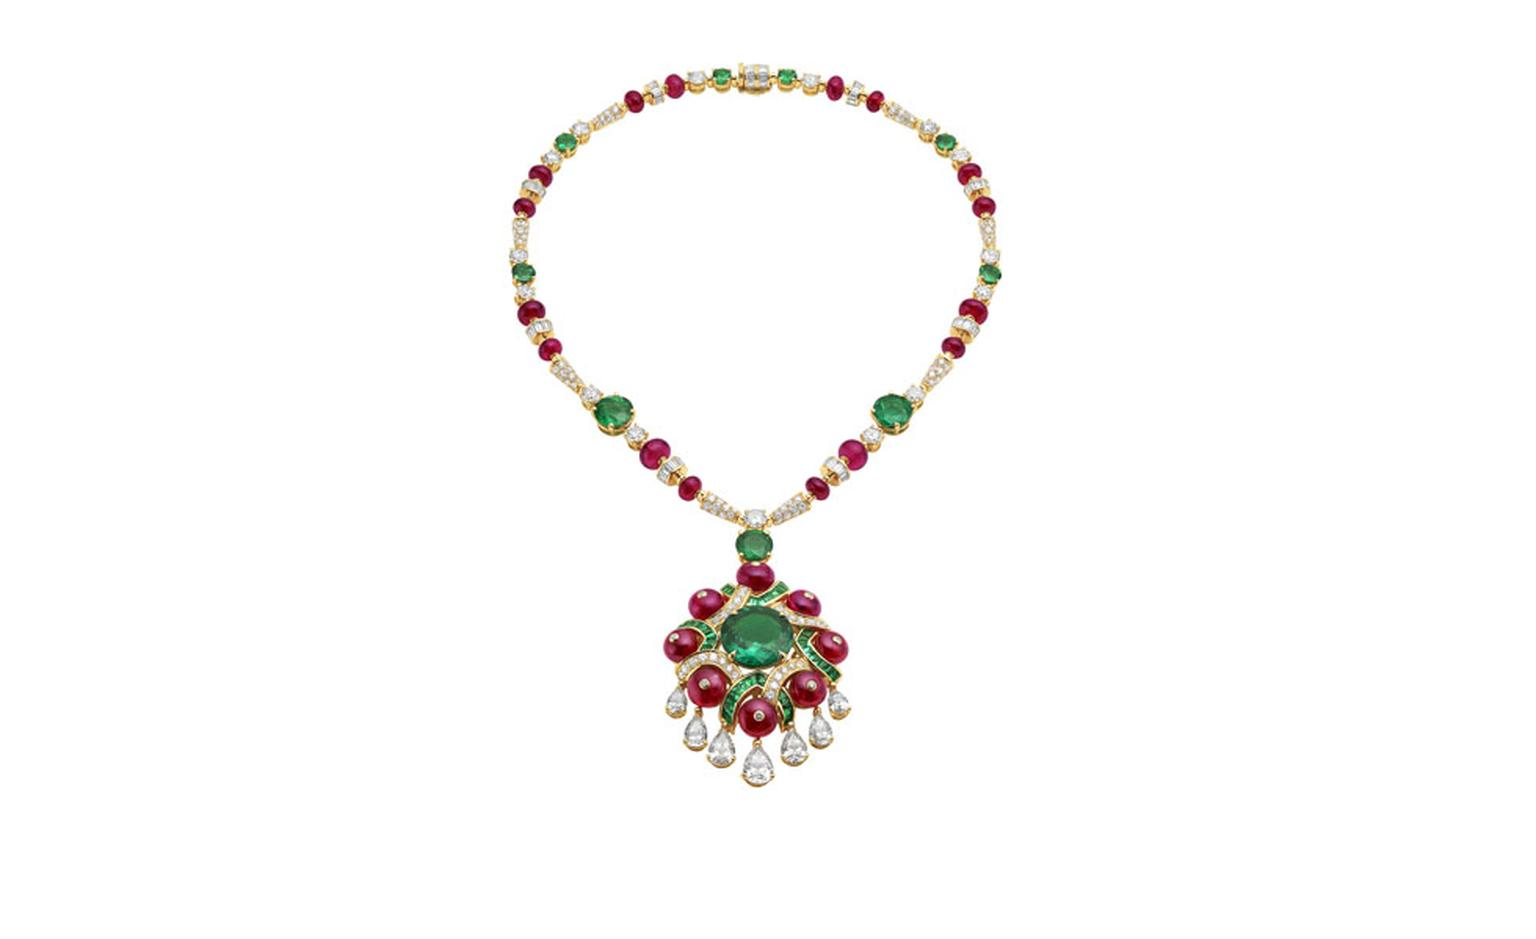 Bulgari. High Jewellery necklace in yellow gold with a Colombian emerald, 9 emeralds, 38 buff top emeralds, 24 spinel beads, 7 pea brilliant cut diamonds, 15 round cut diamonds, baguette diamonds and pave diamonds. POA.